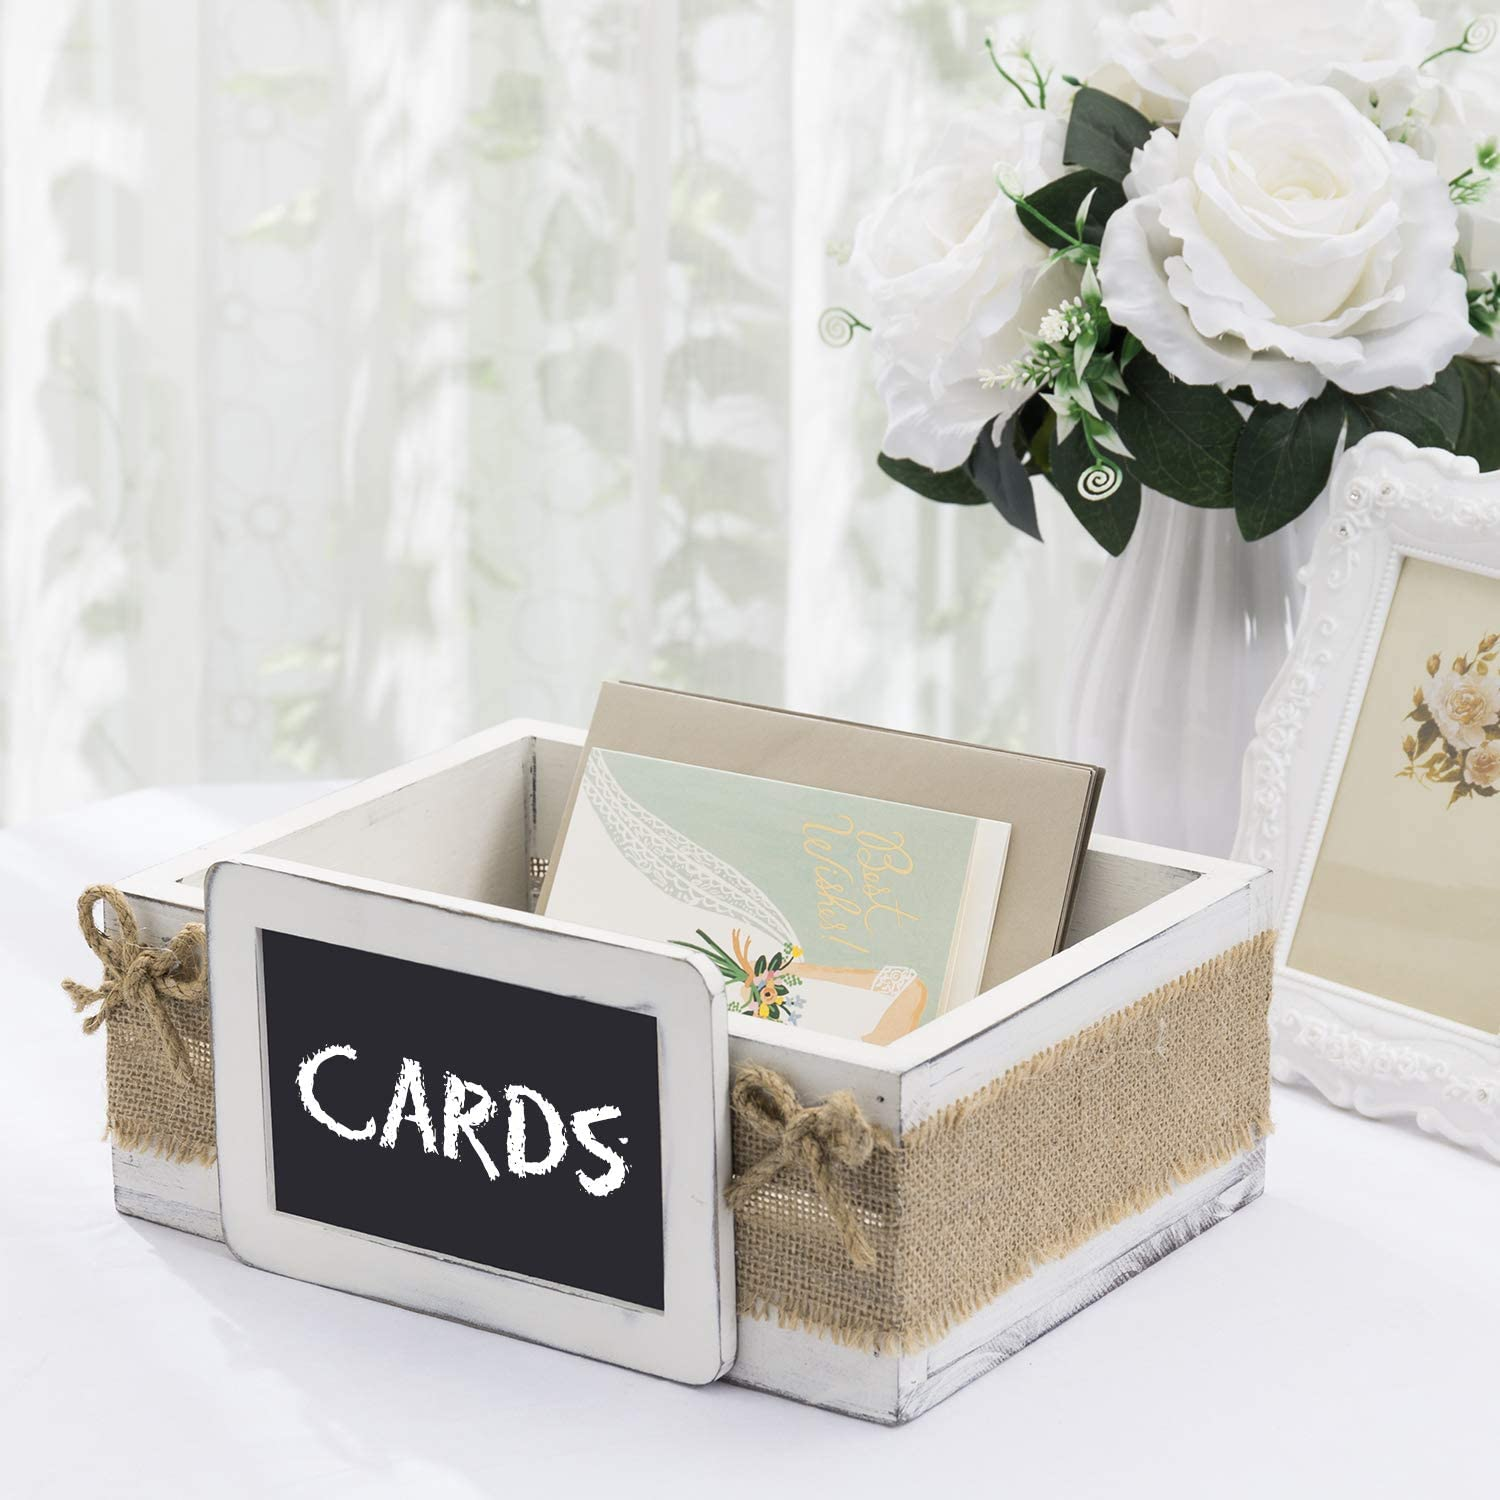 MyGift Vintage White Wood Wedding Party Guest Gift Card Box with Chalkboard Label & Rustic Burlap Wrap